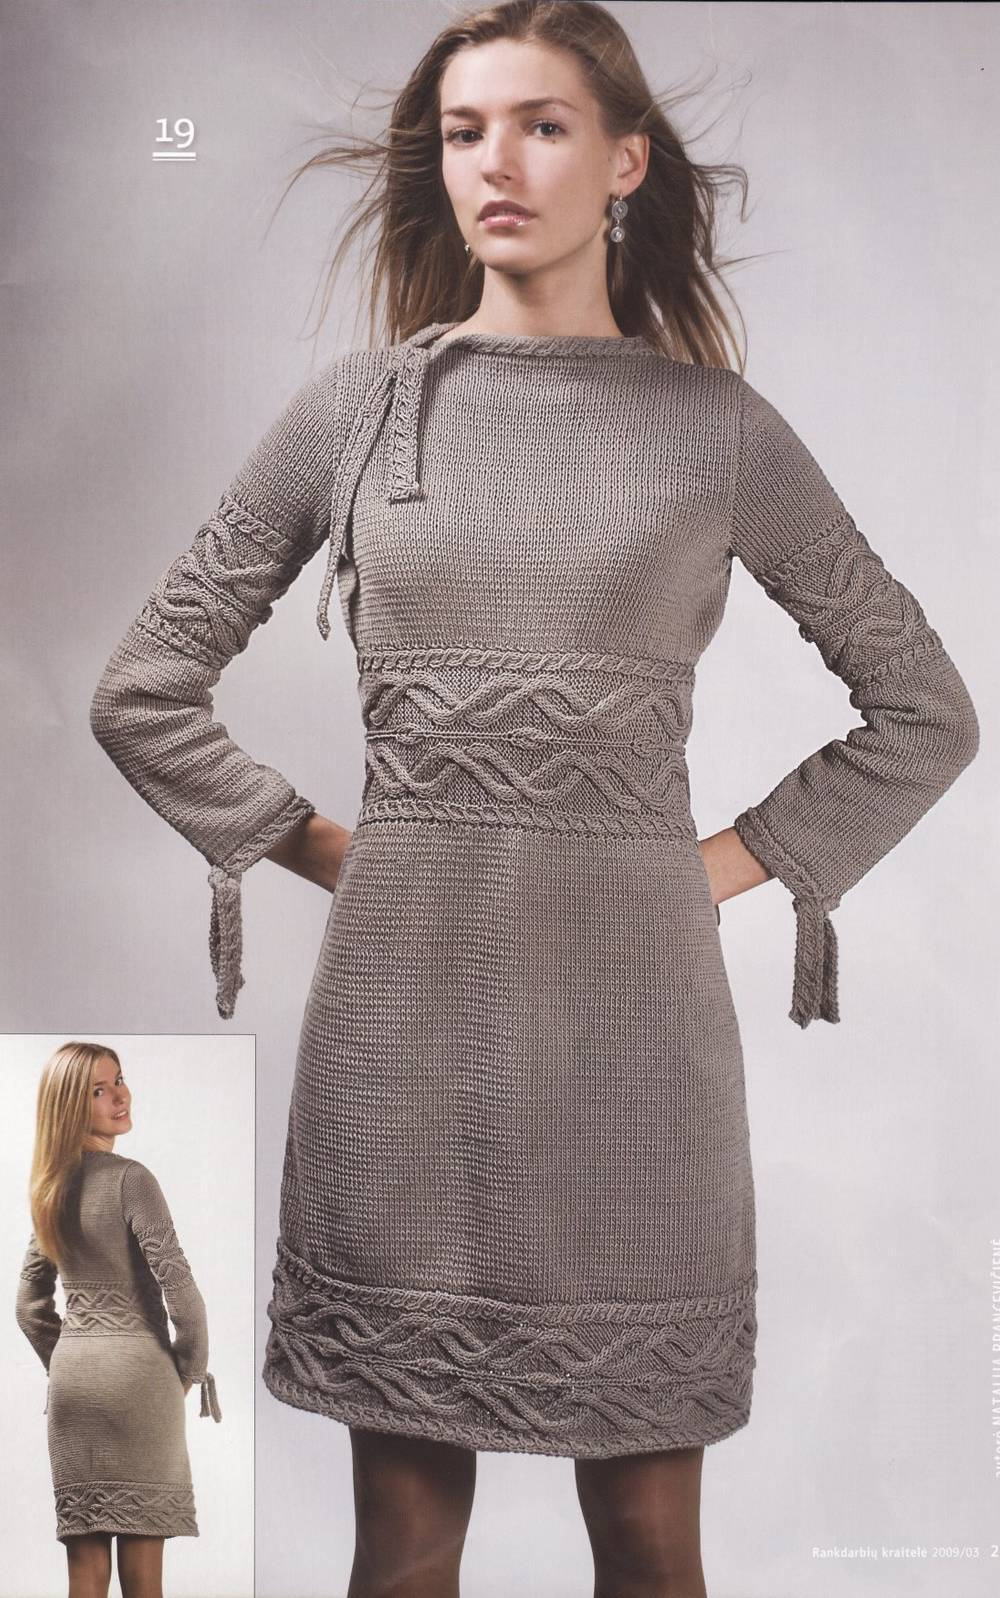 Knitting Pattern Jumper Dress : ??? ?????: ?????????? ?????? (??????? ???????)